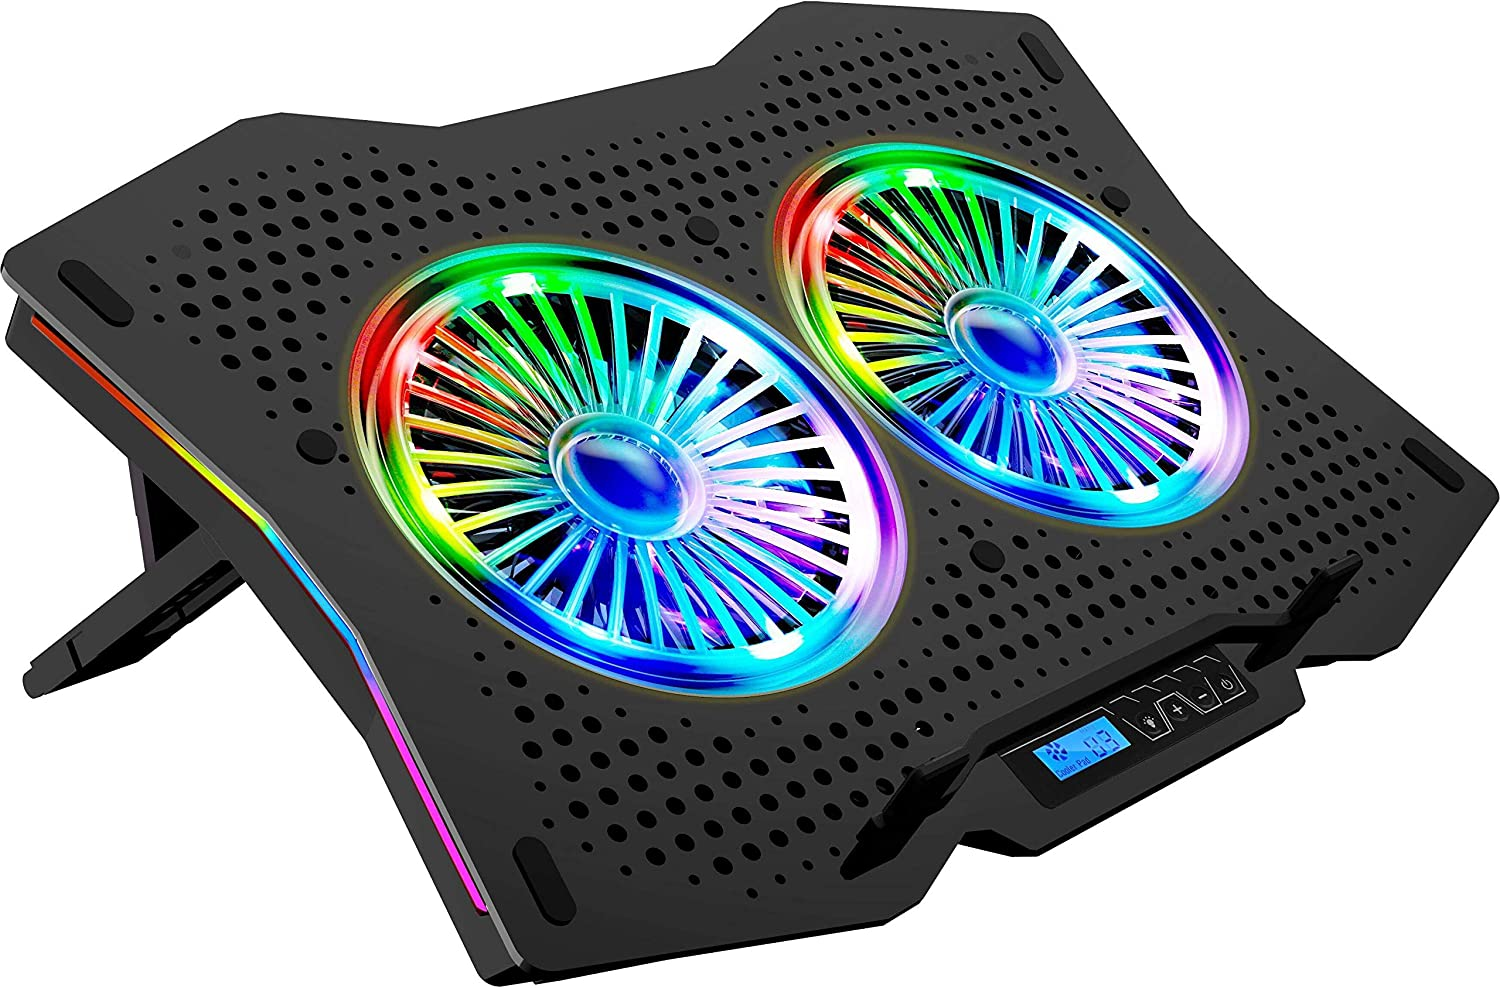 LETUSTO RGB Laptop Cooling Pad, Portable Laptop Cooler Stand for up to 17'' Notebooks, 2 Fans with 17dBA and 2 USB Ports